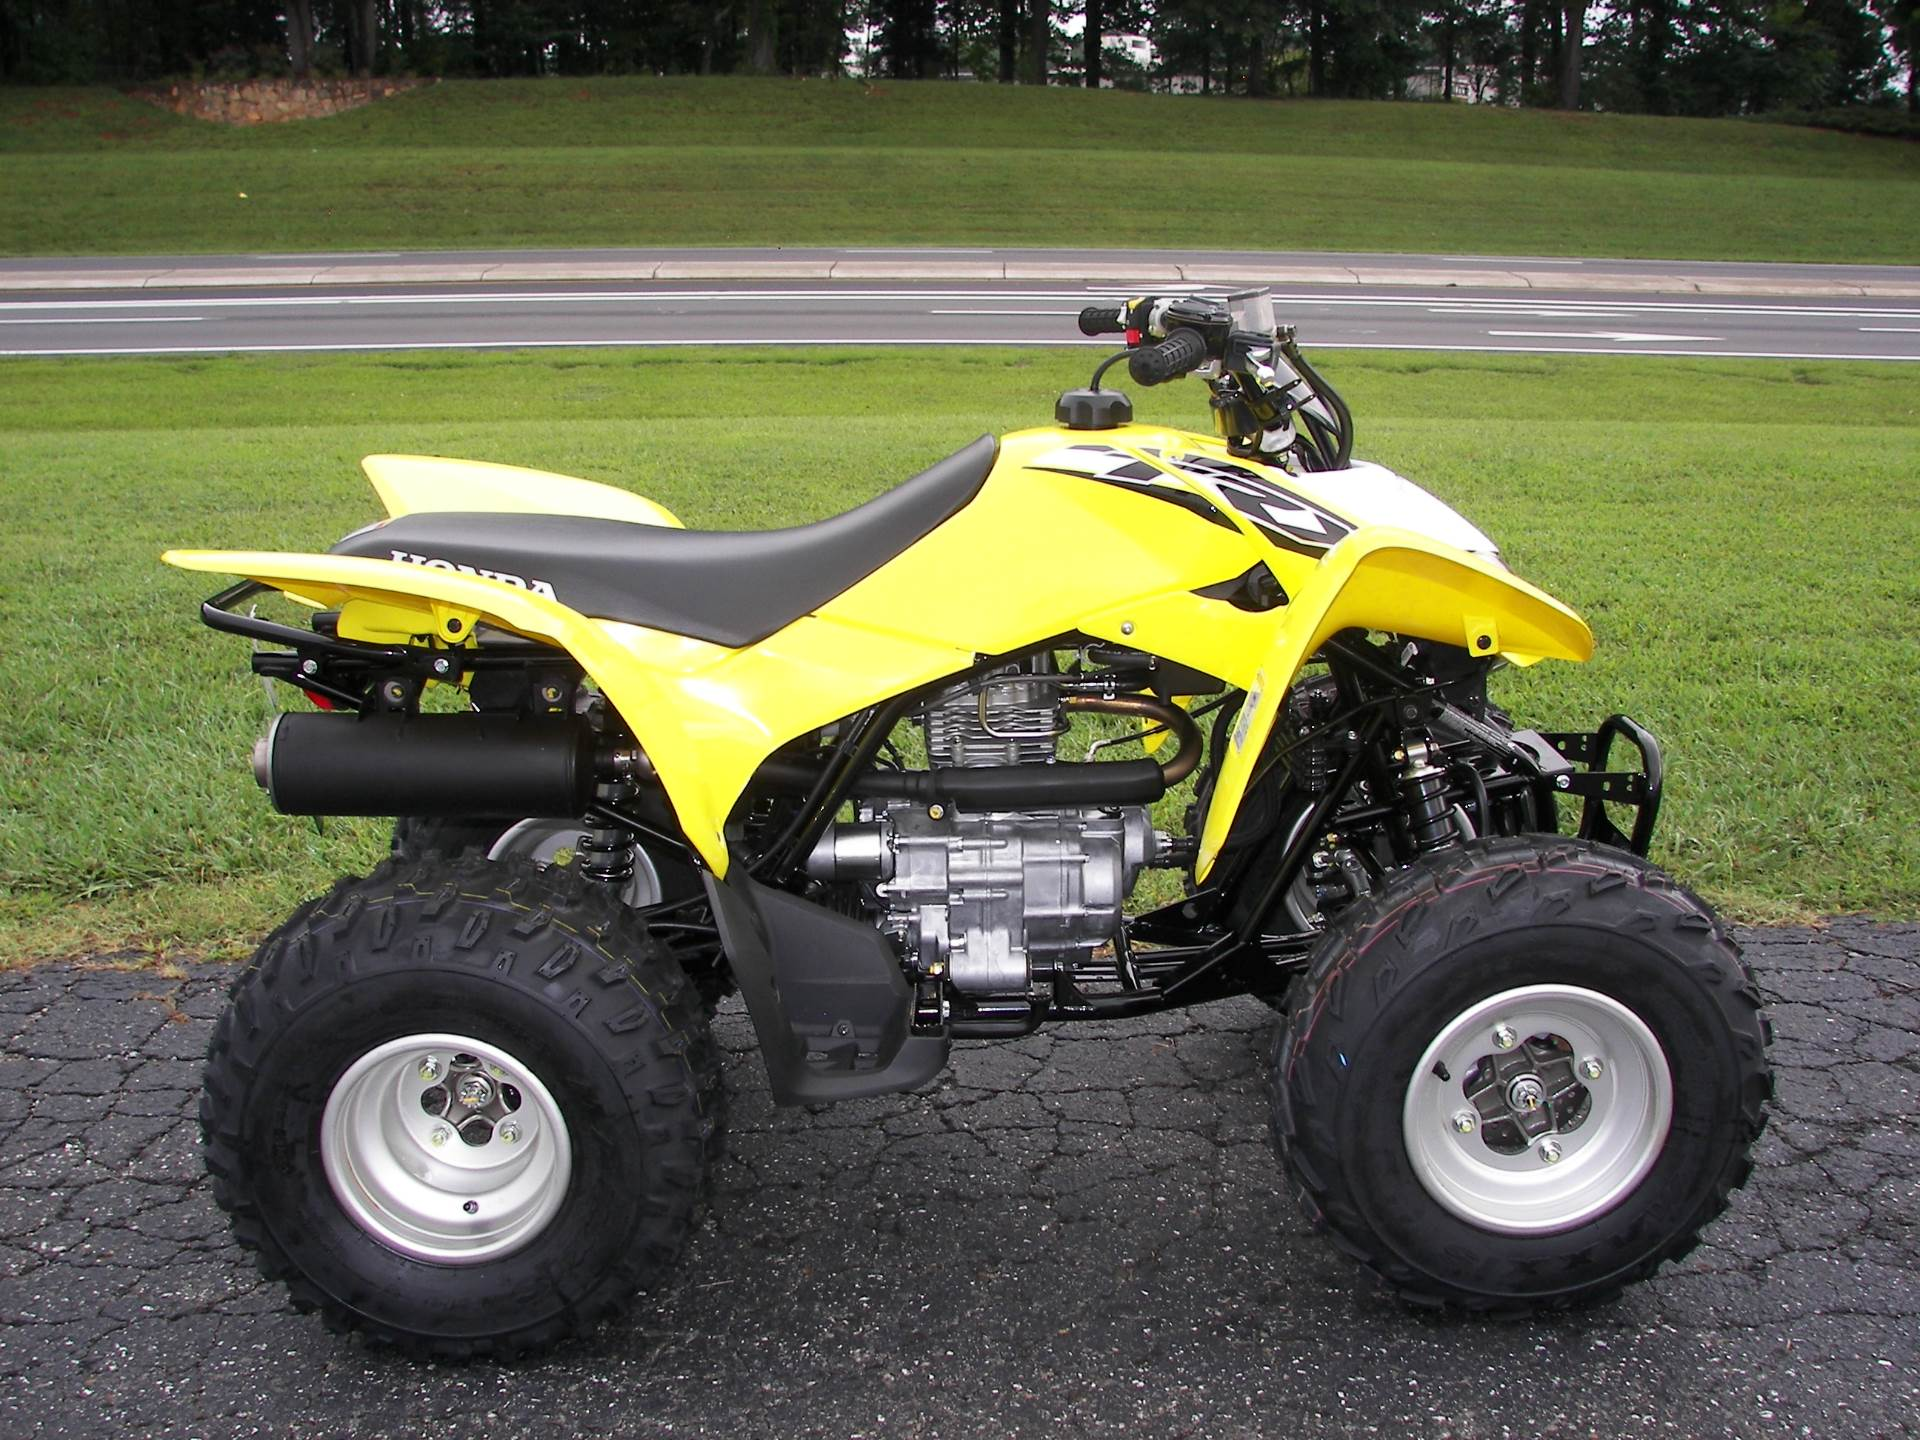 2018 honda trx250x.  honda 2018 honda trx250x in shelby north carolina throughout honda trx250x a